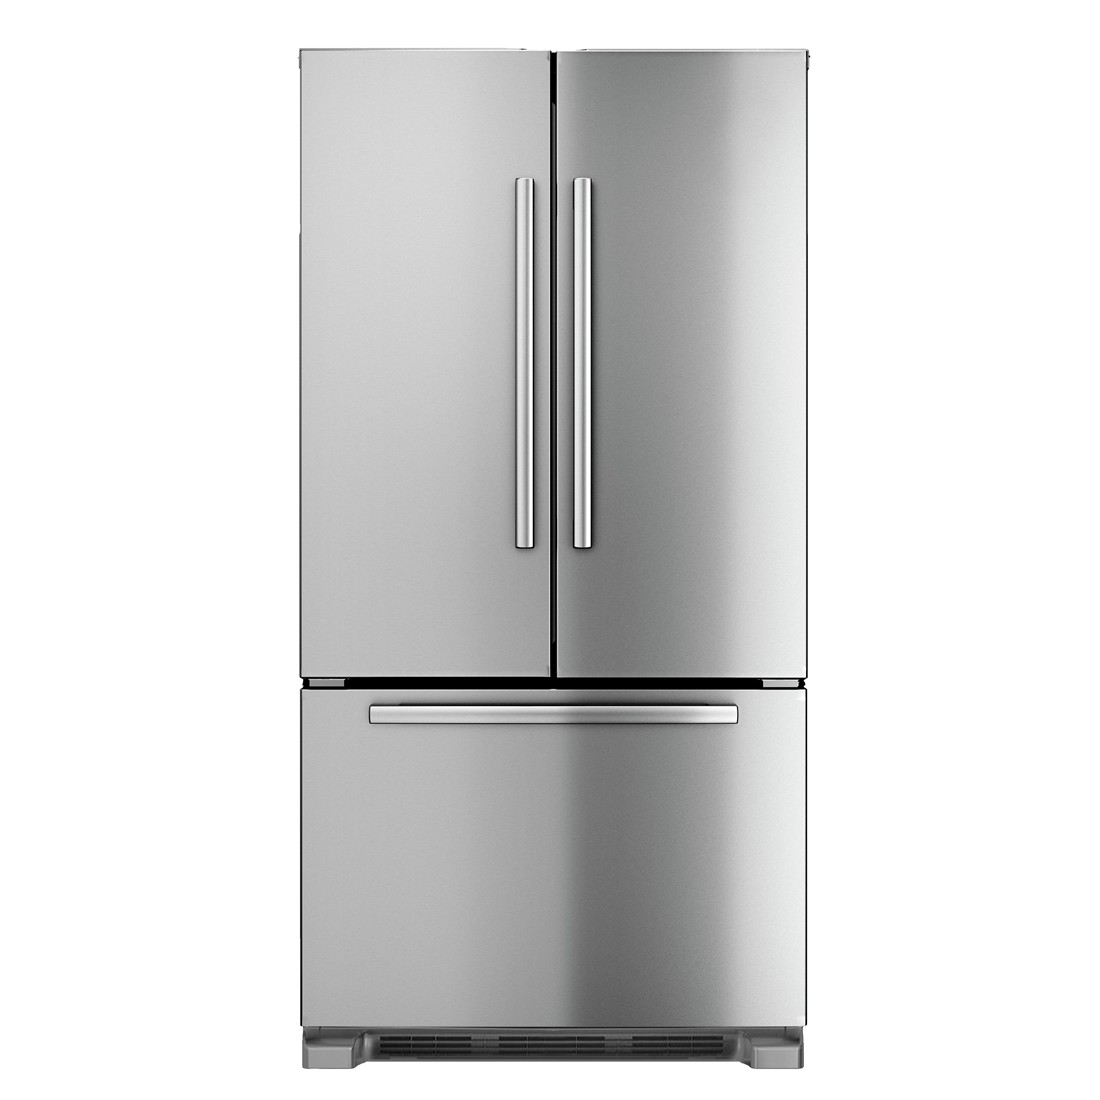 Find Bosch Refrigerators in Mass | French Doors B22CT80SNS